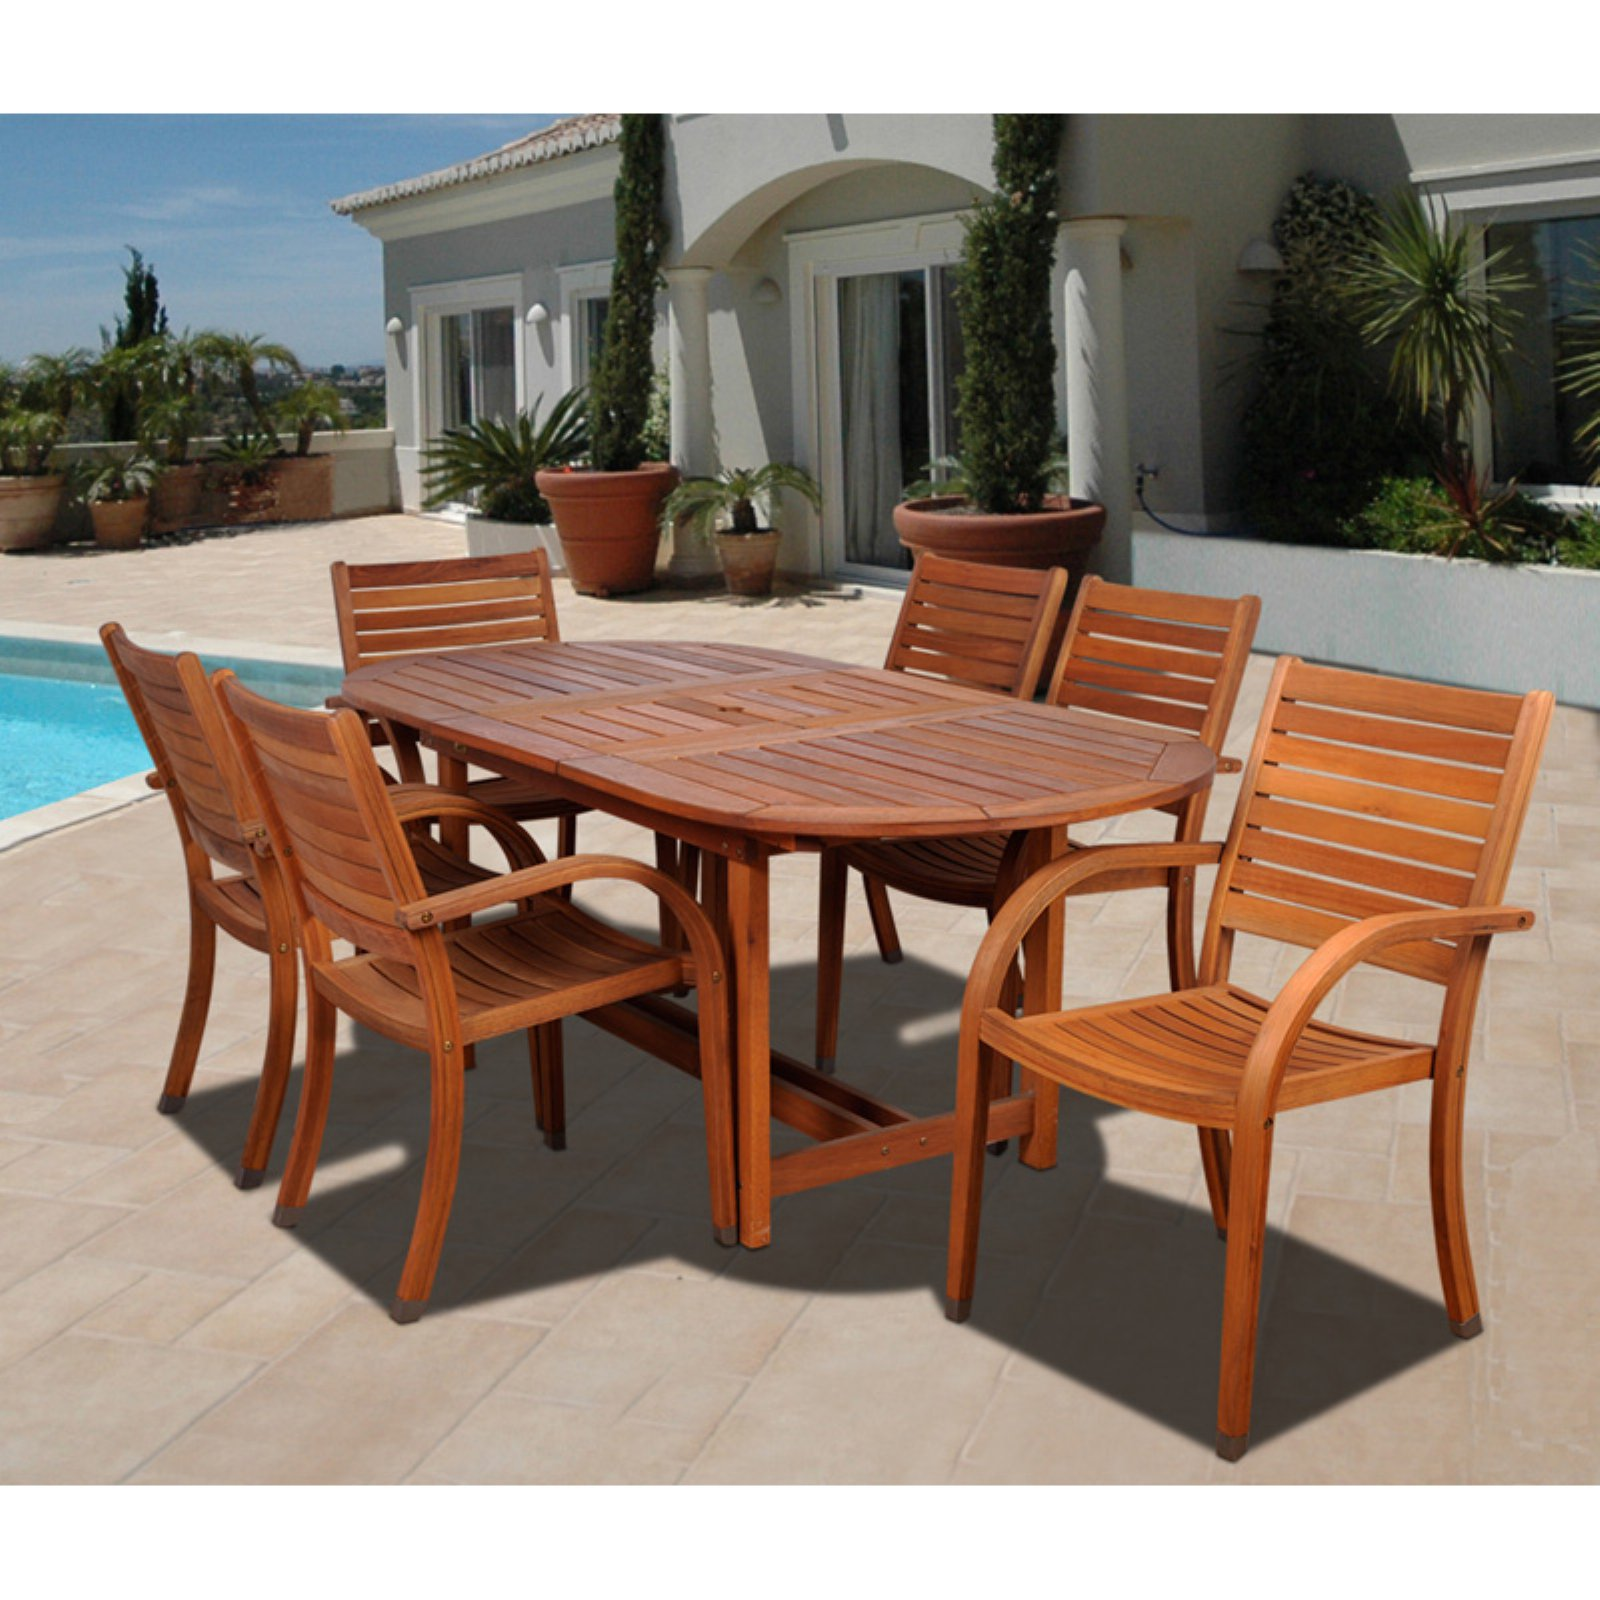 Amazonia Kentucky 7 Piece Oval Eucalyptus Patio Dining Set